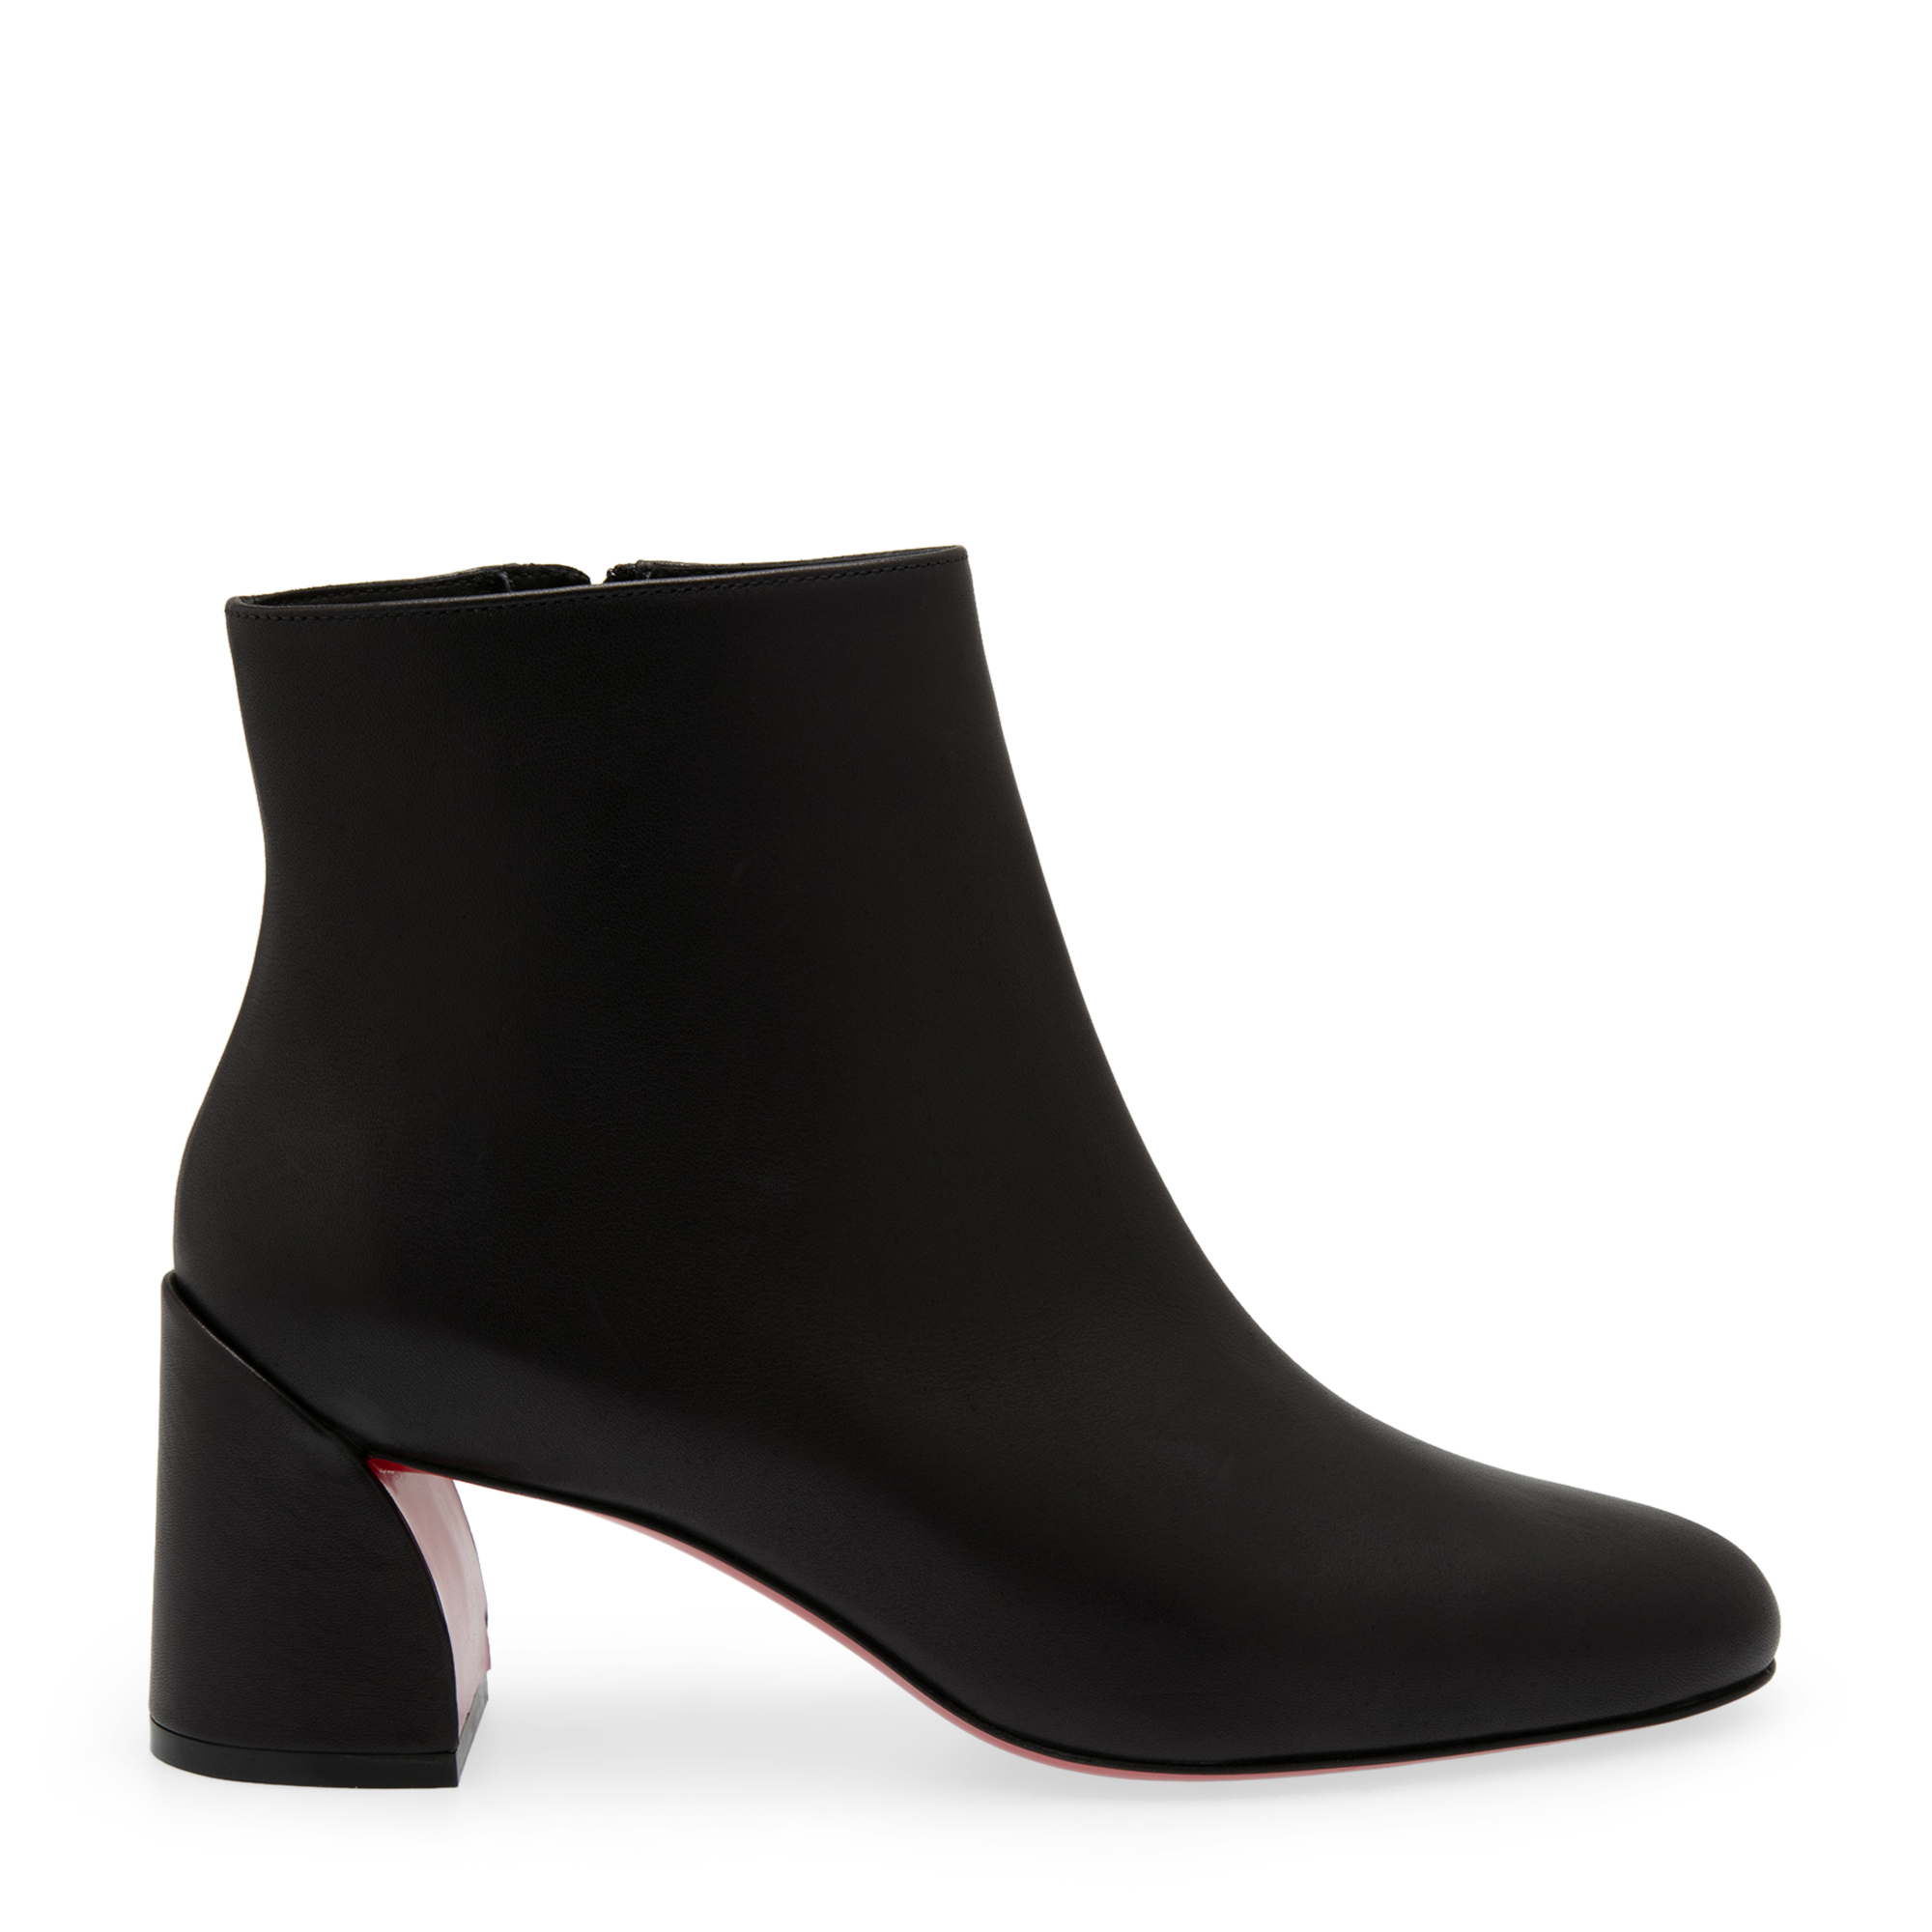 Turela 55 ankle boots